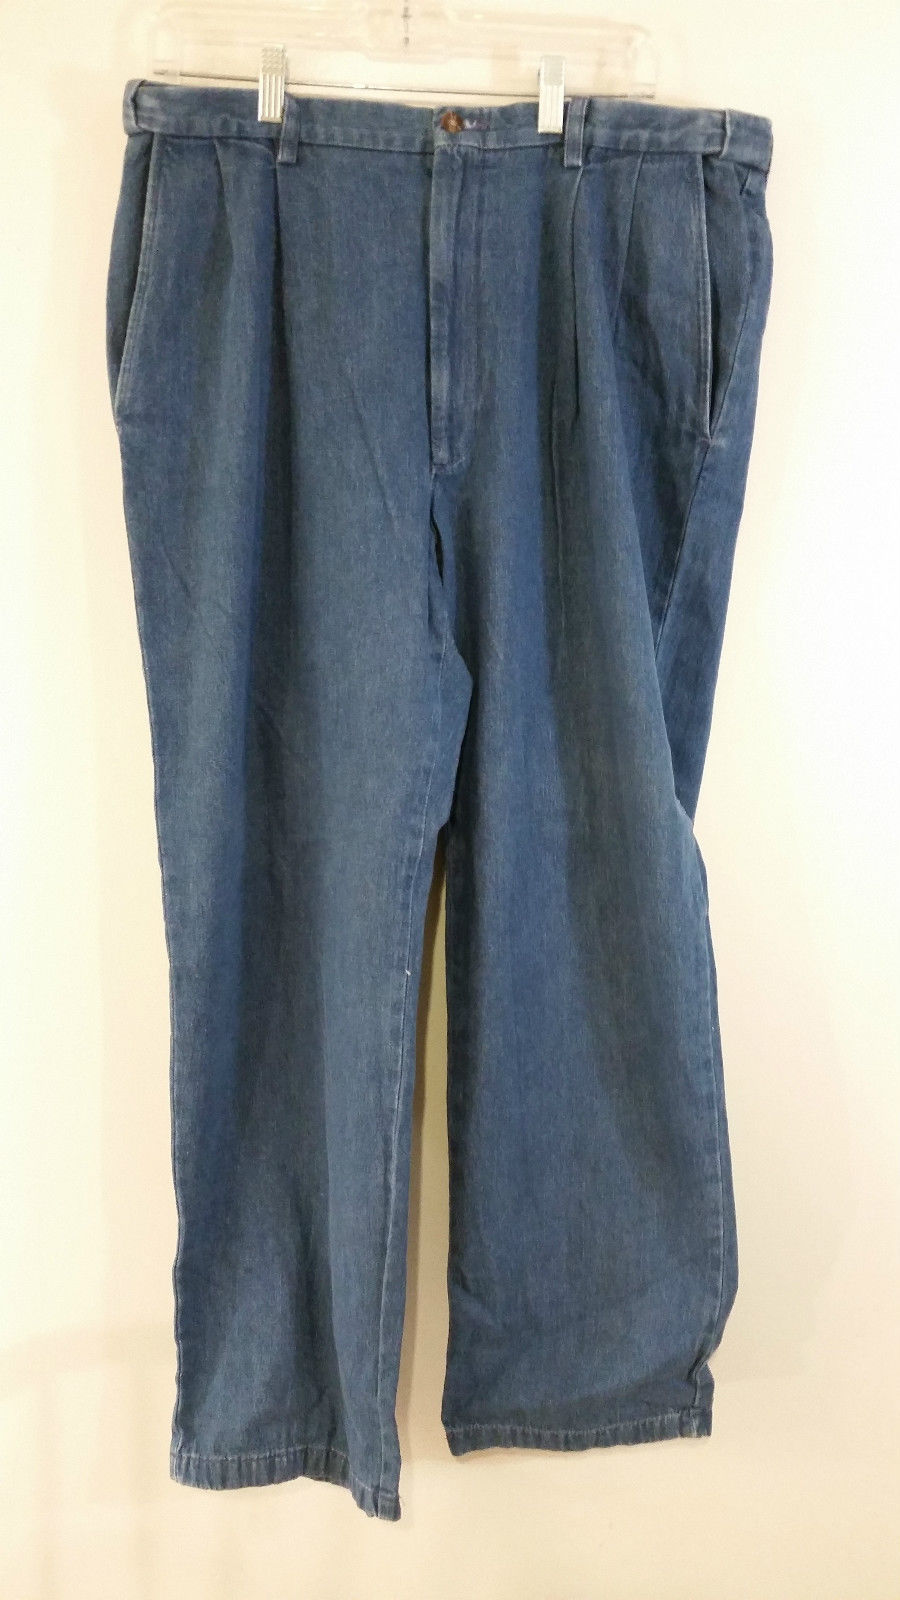 Haggar Dark Blue 100 Percent Cotton Jeans Pleated Front Size 36 by 32